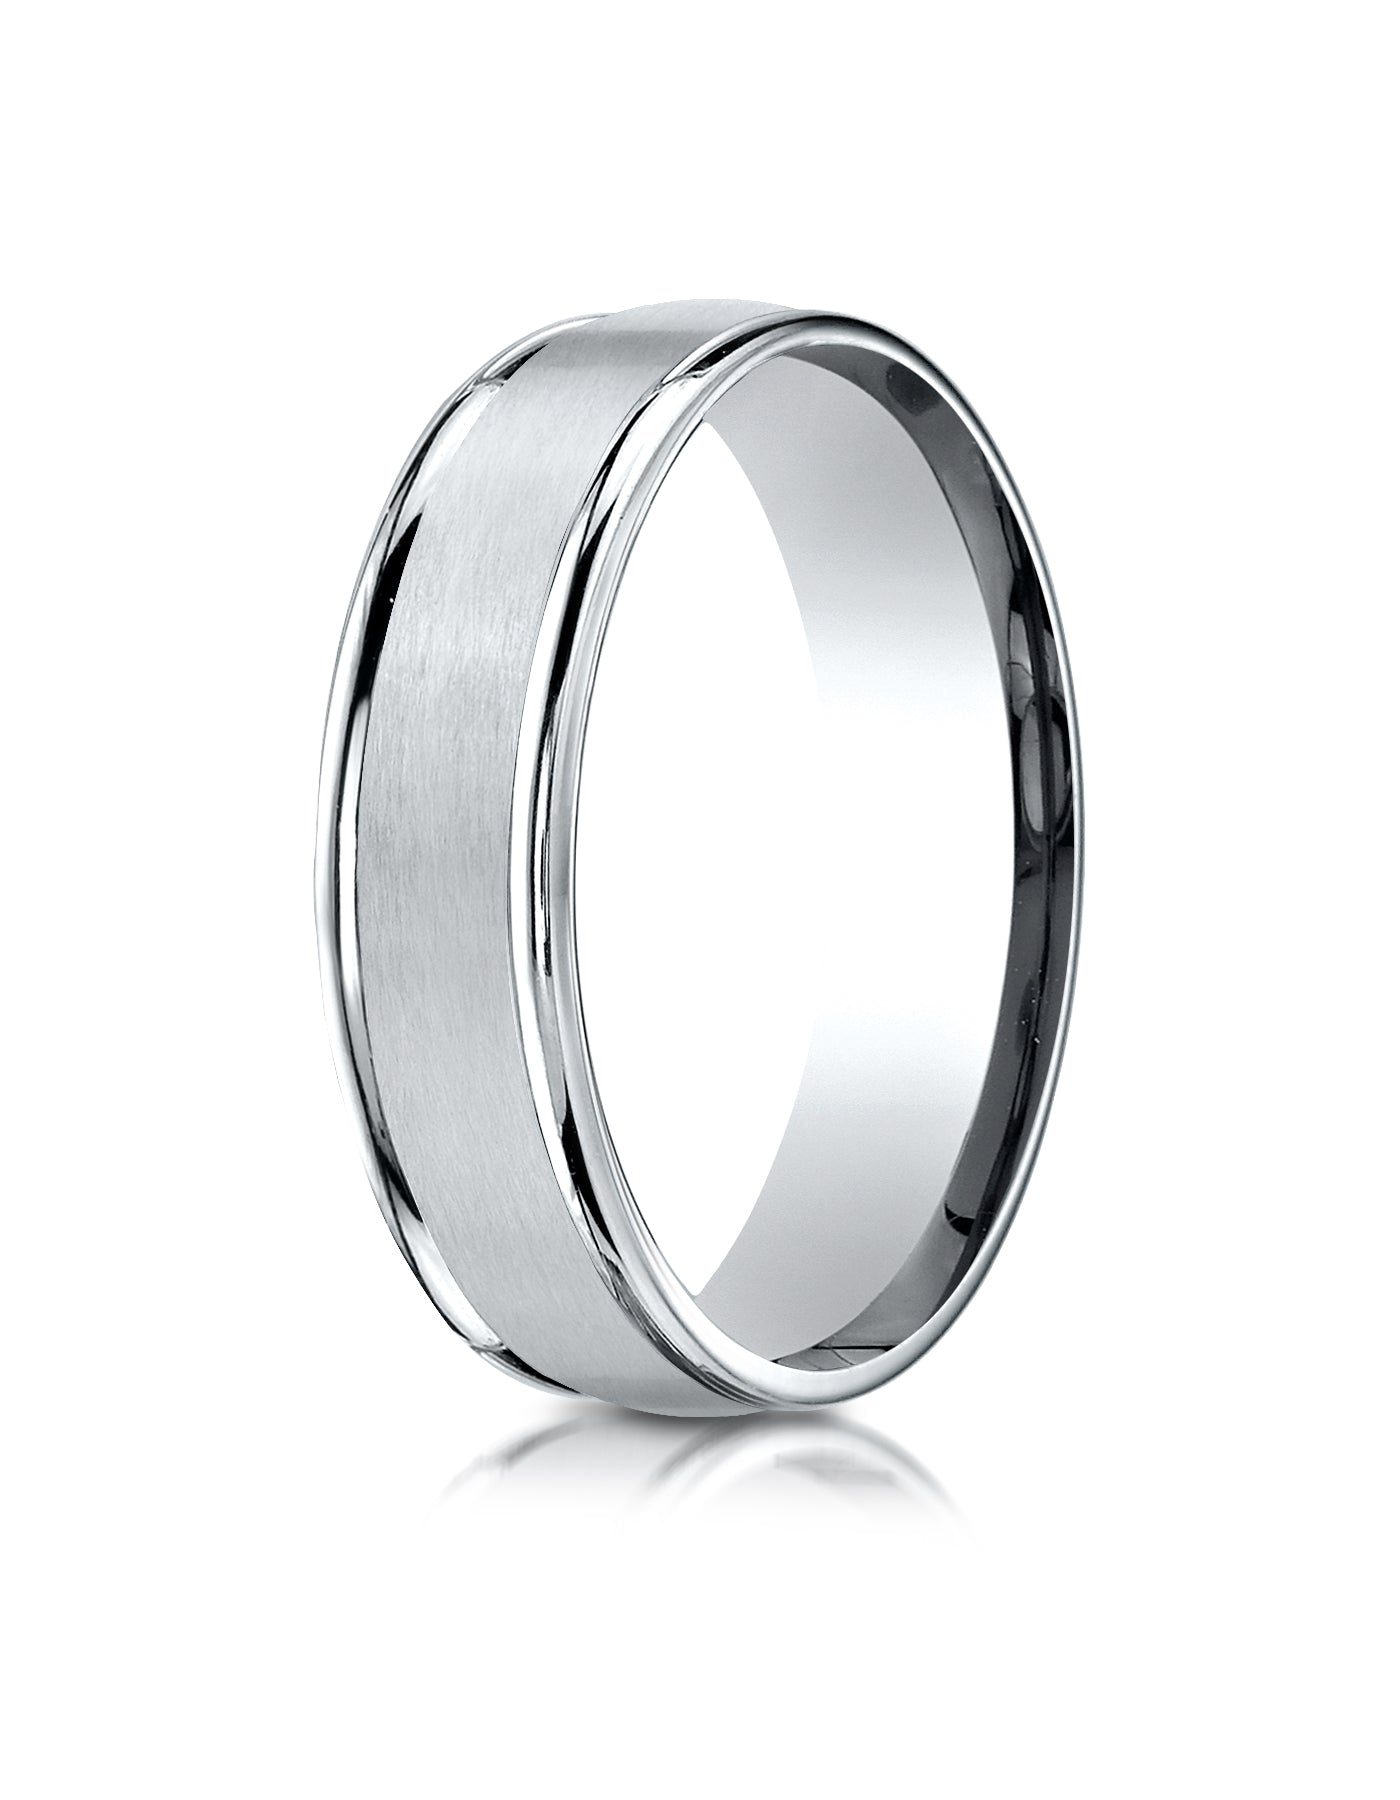 rings other bands benchmark tungsten and alternative wedding com metals larsonjewelers c